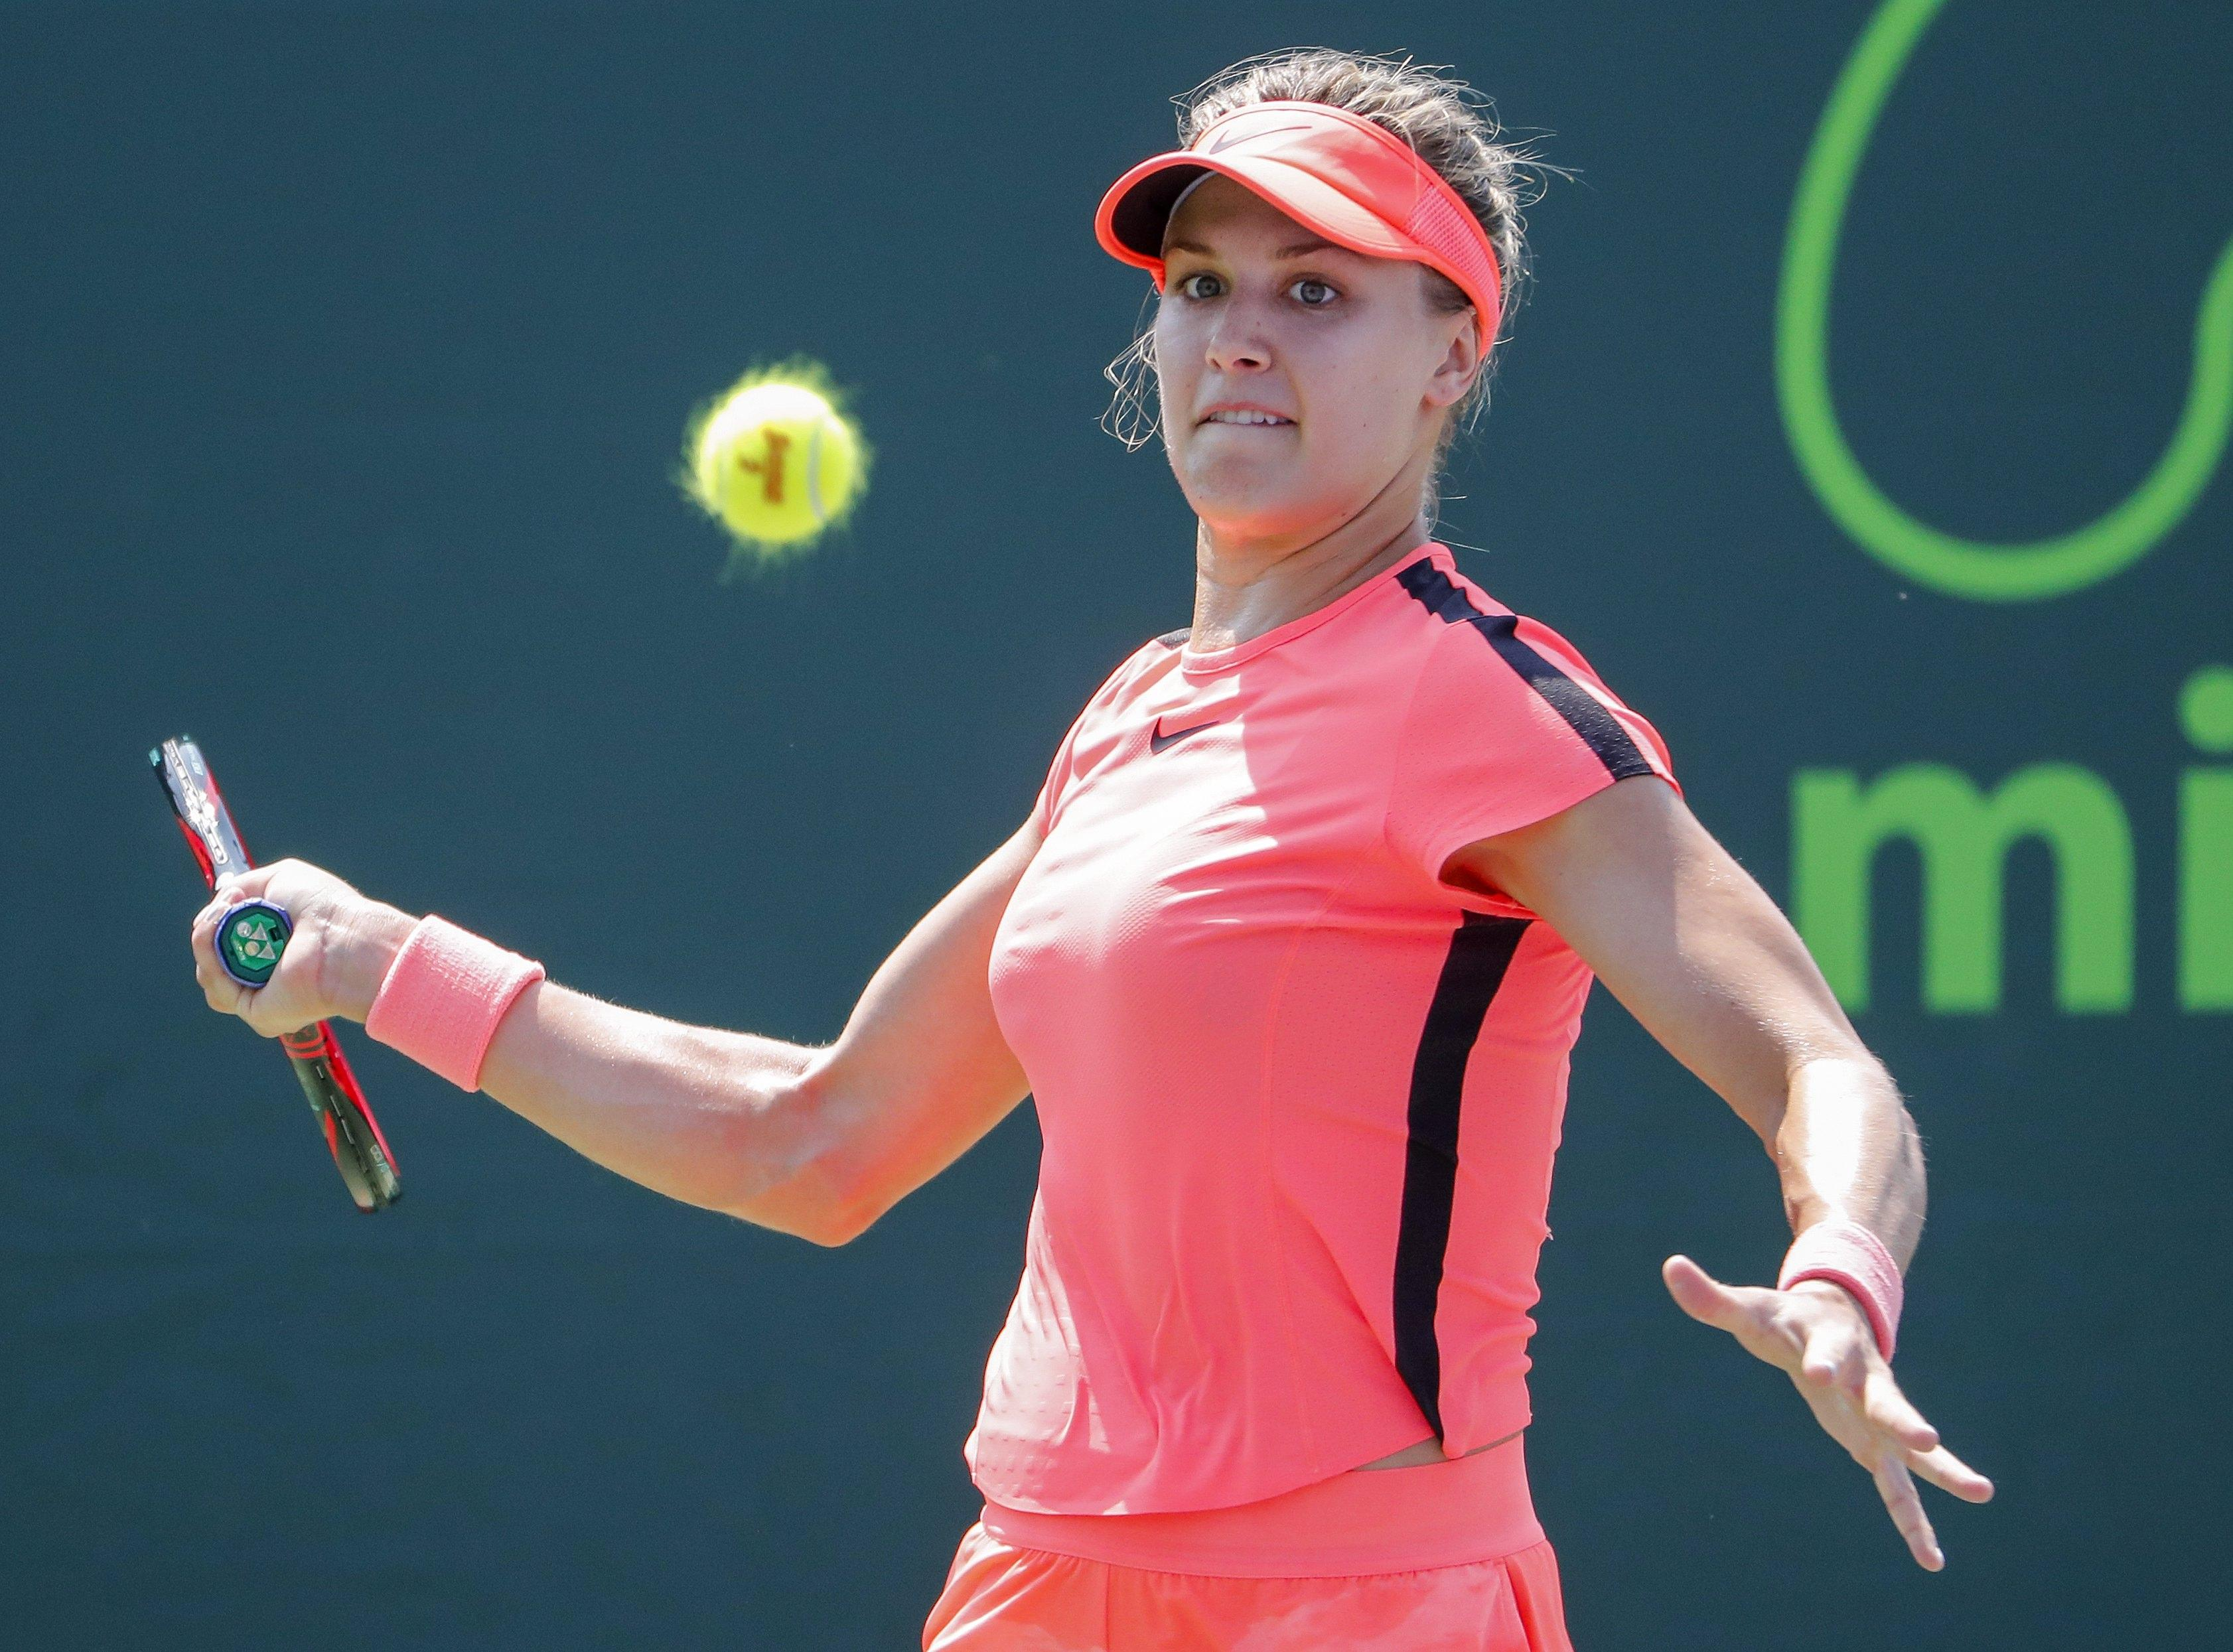 Eugenie Bouchard is currently No114 in the WTA rankings